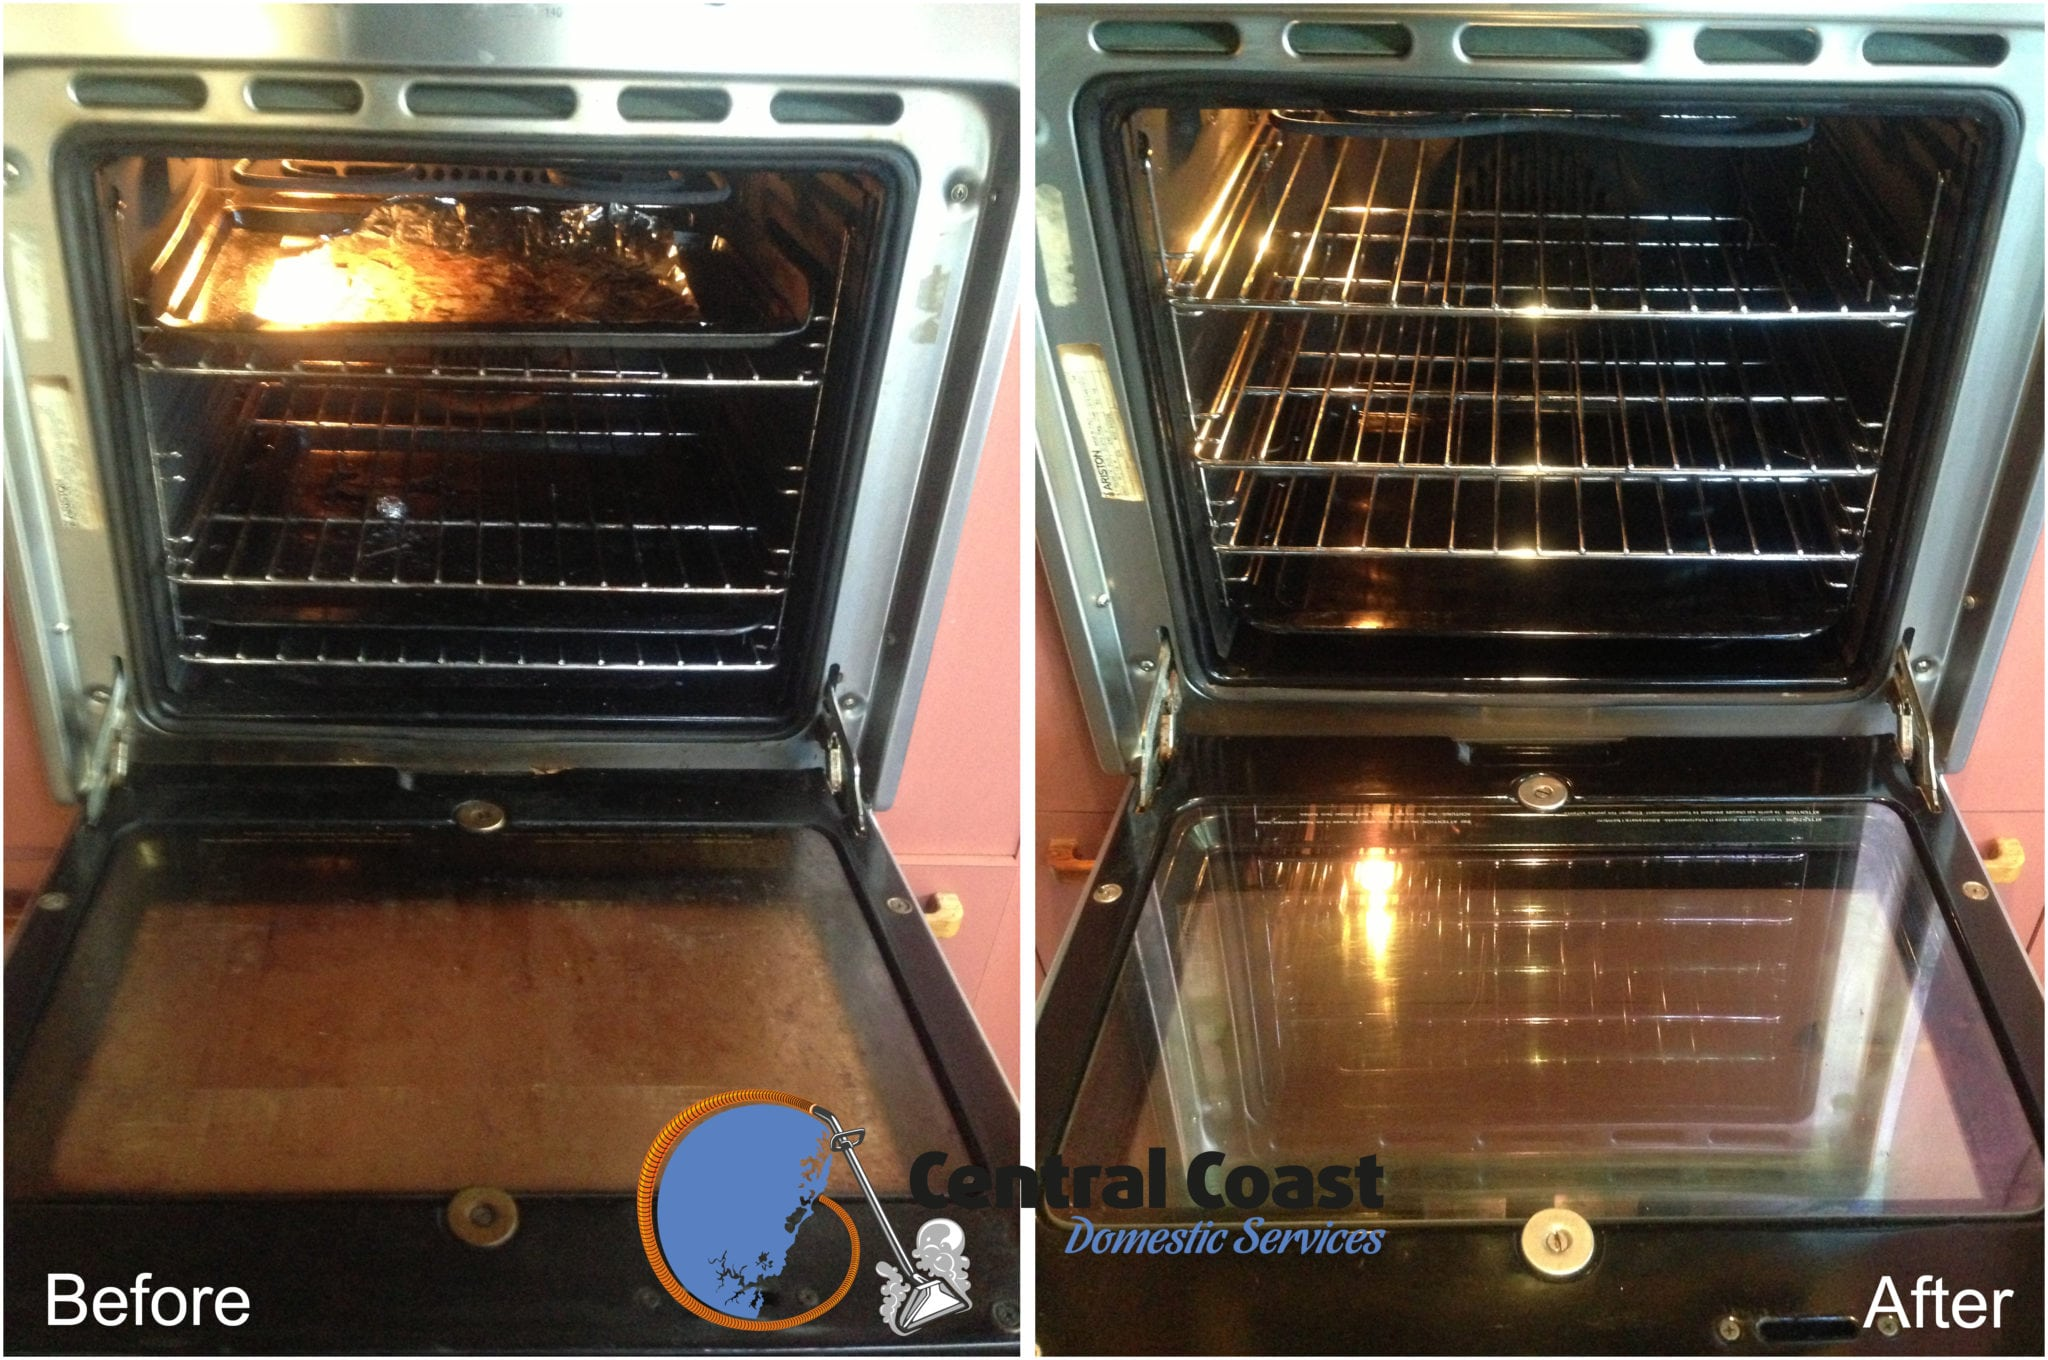 Oven Cleaning Before & After